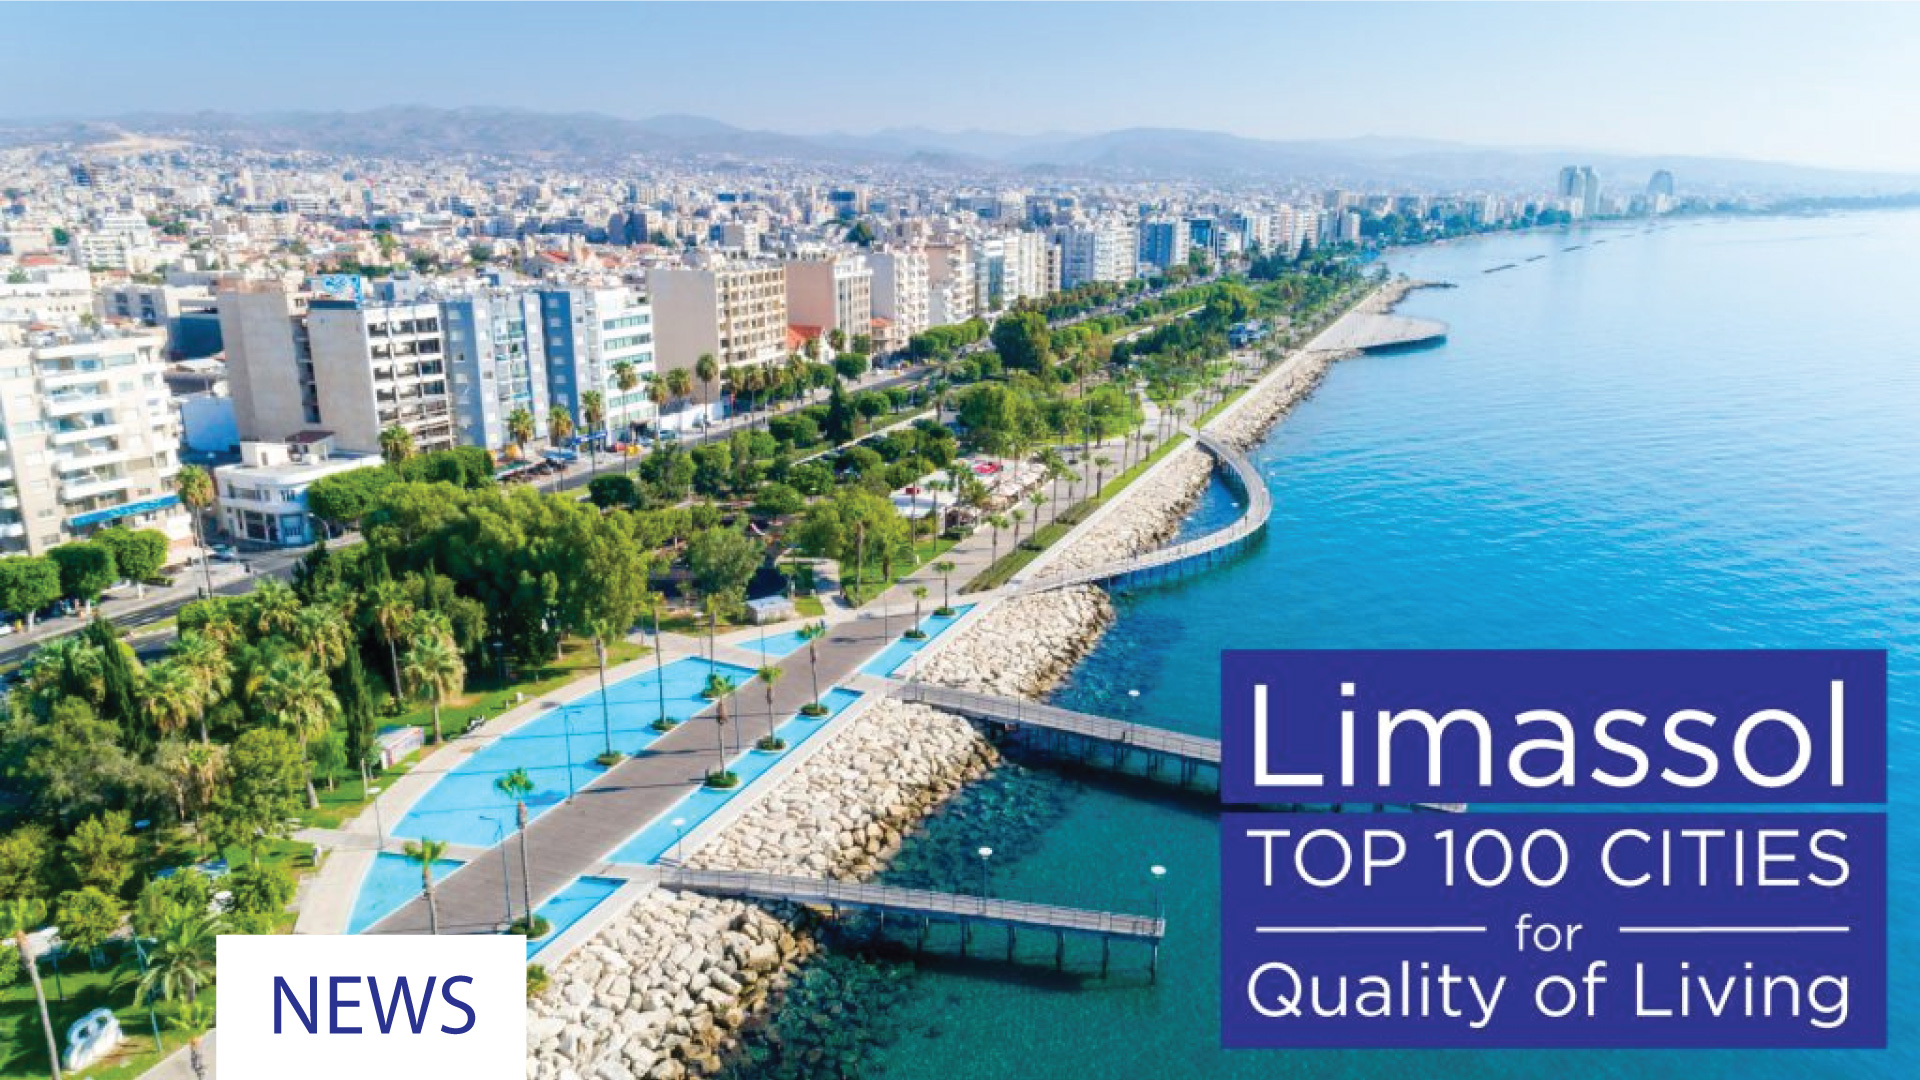 LIMASSOL IN TOP 100 FOR QUALITY OF LIVING